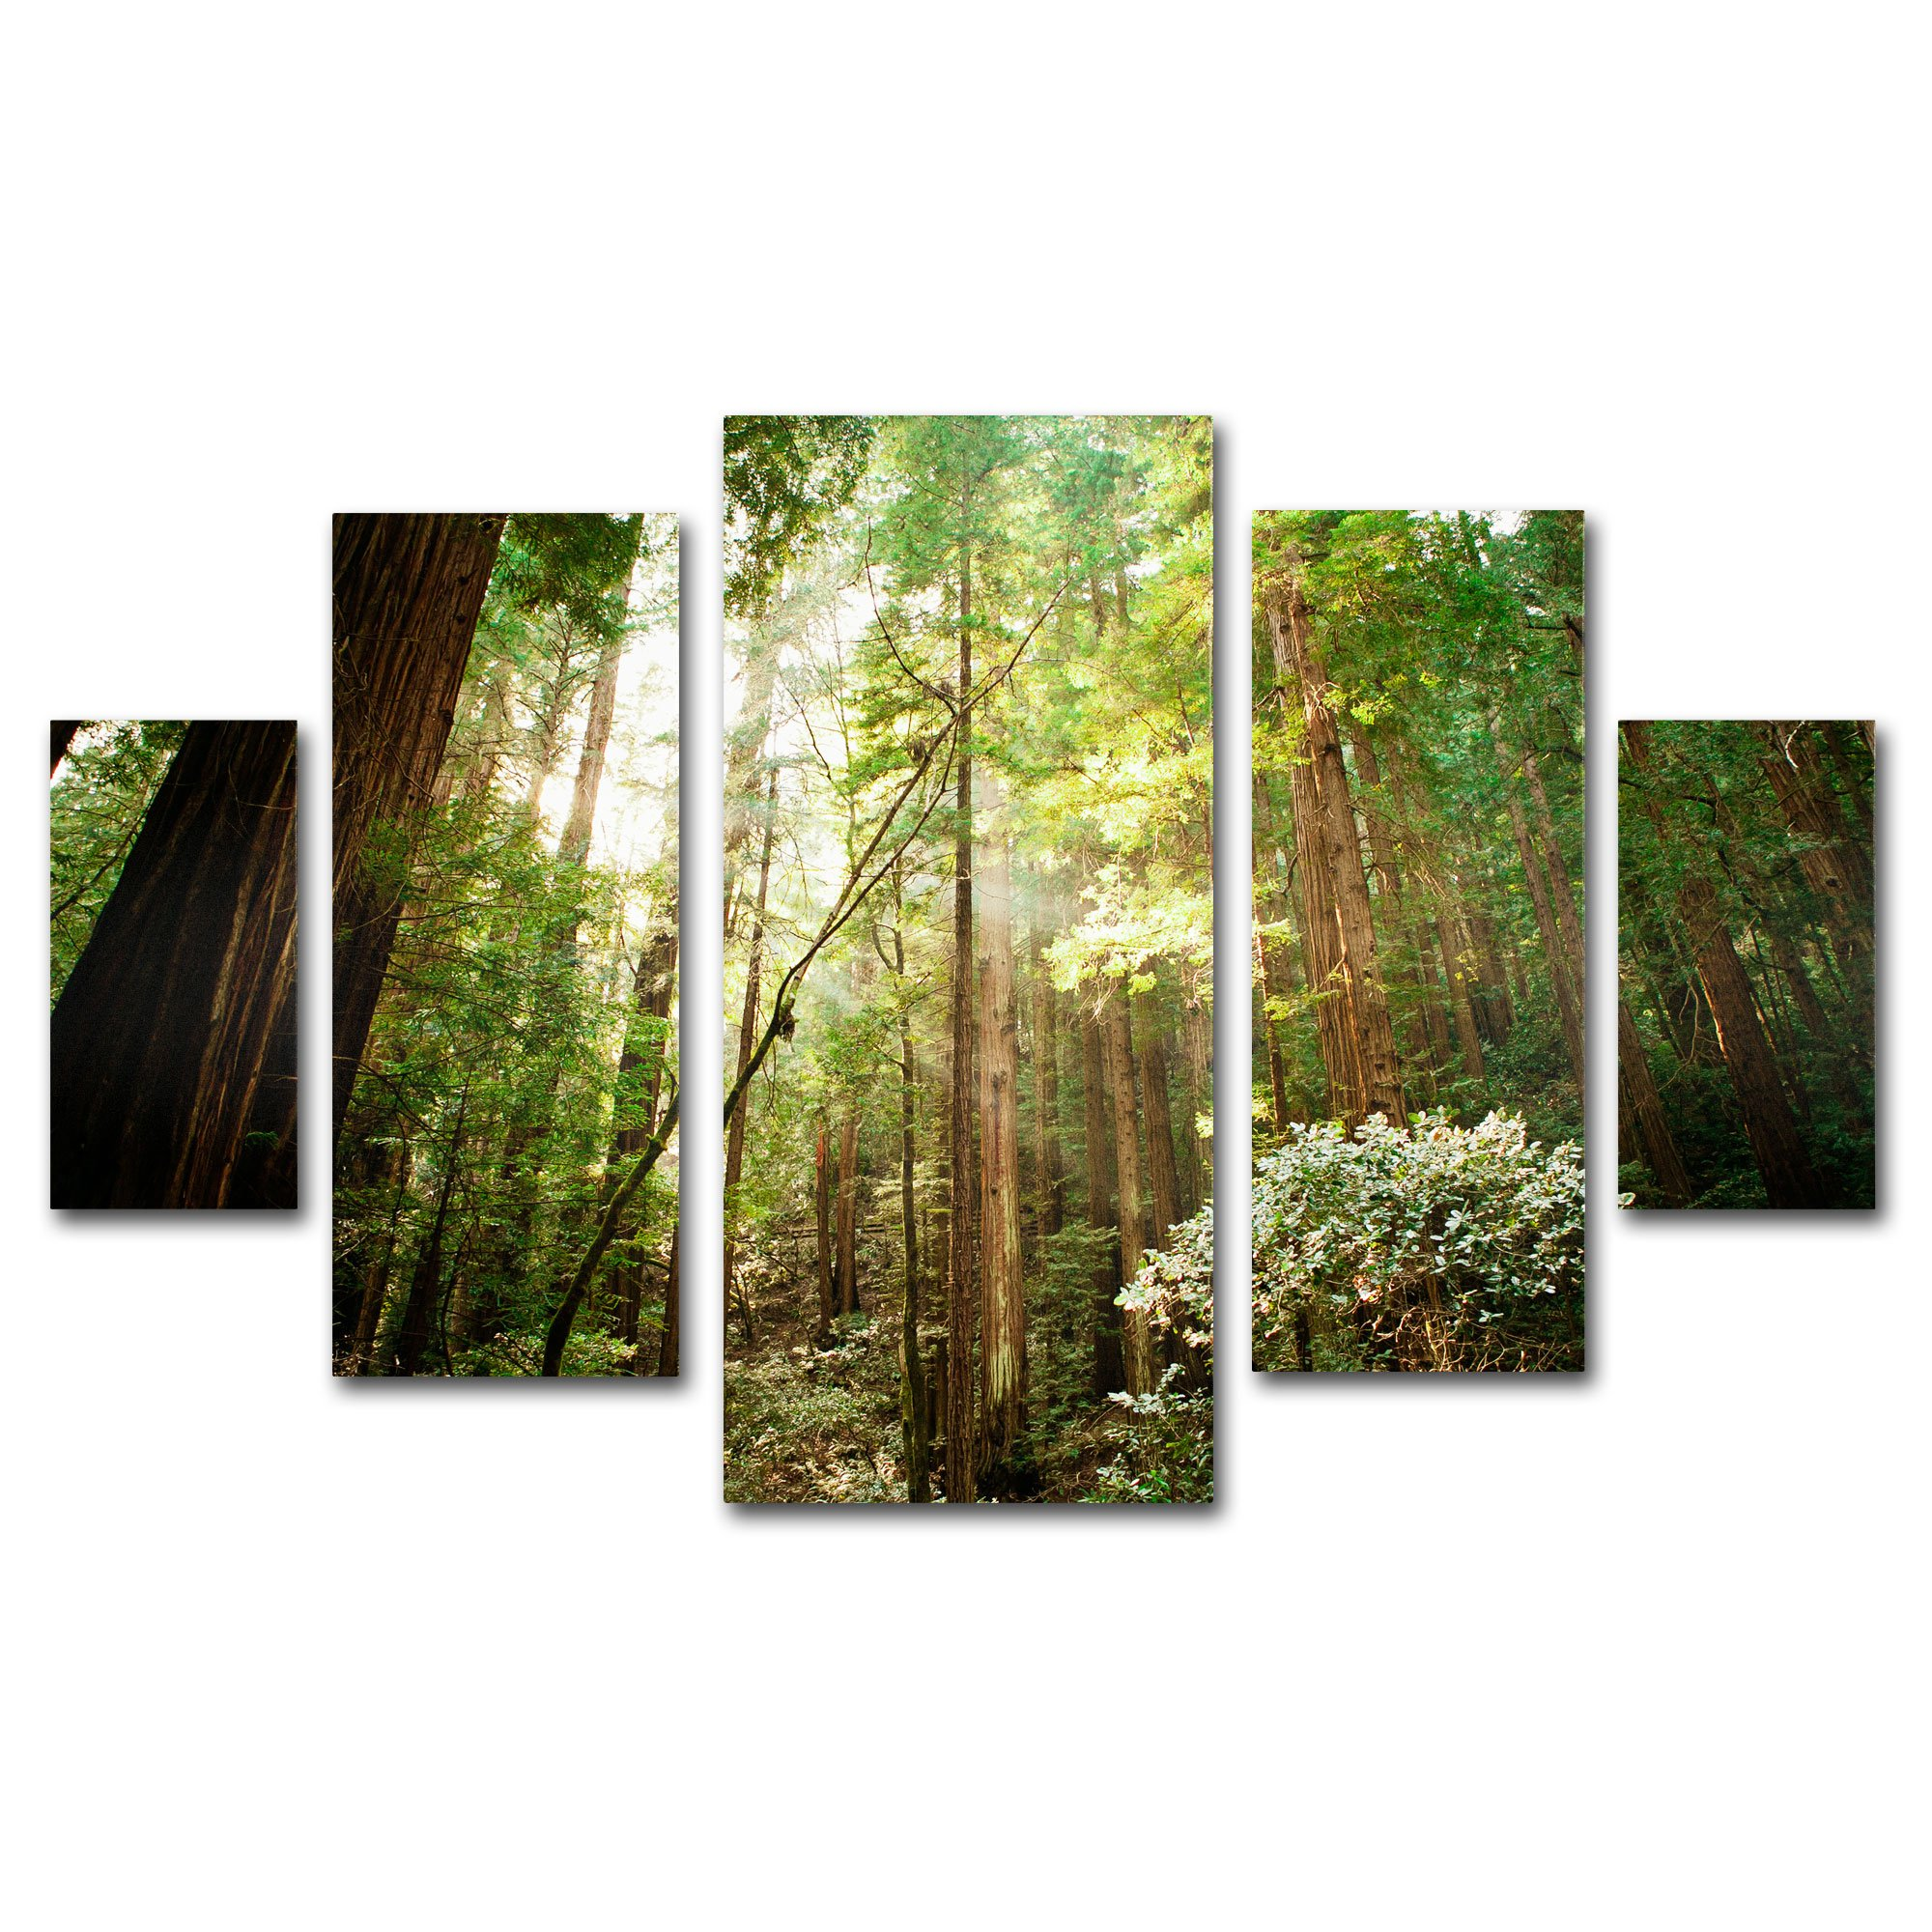 ''Muir Woods'' Multi Panel Art Set by Ariane Moshayedi